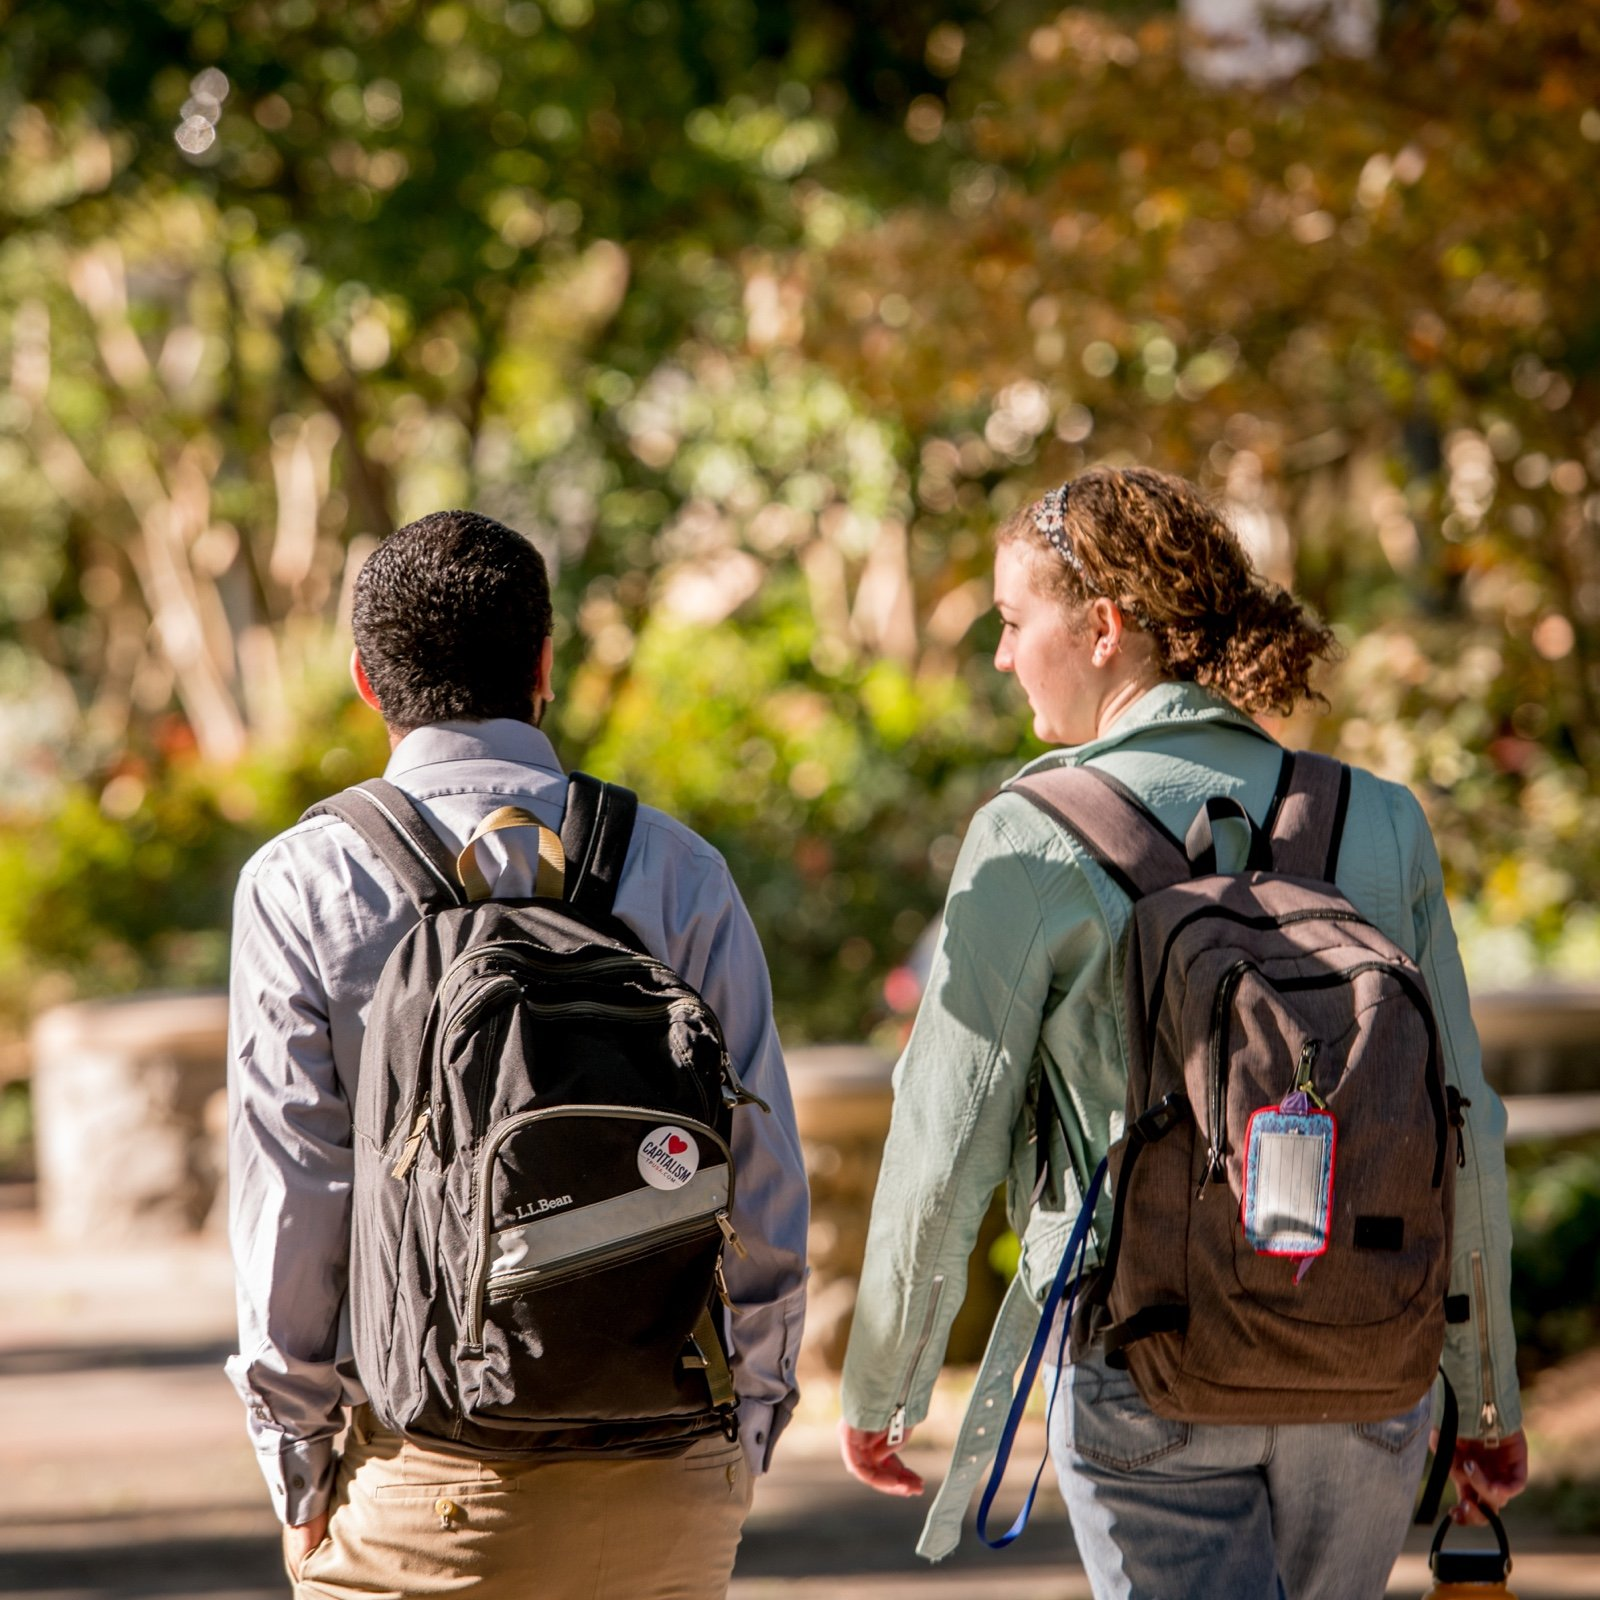 Two students walking together on campus